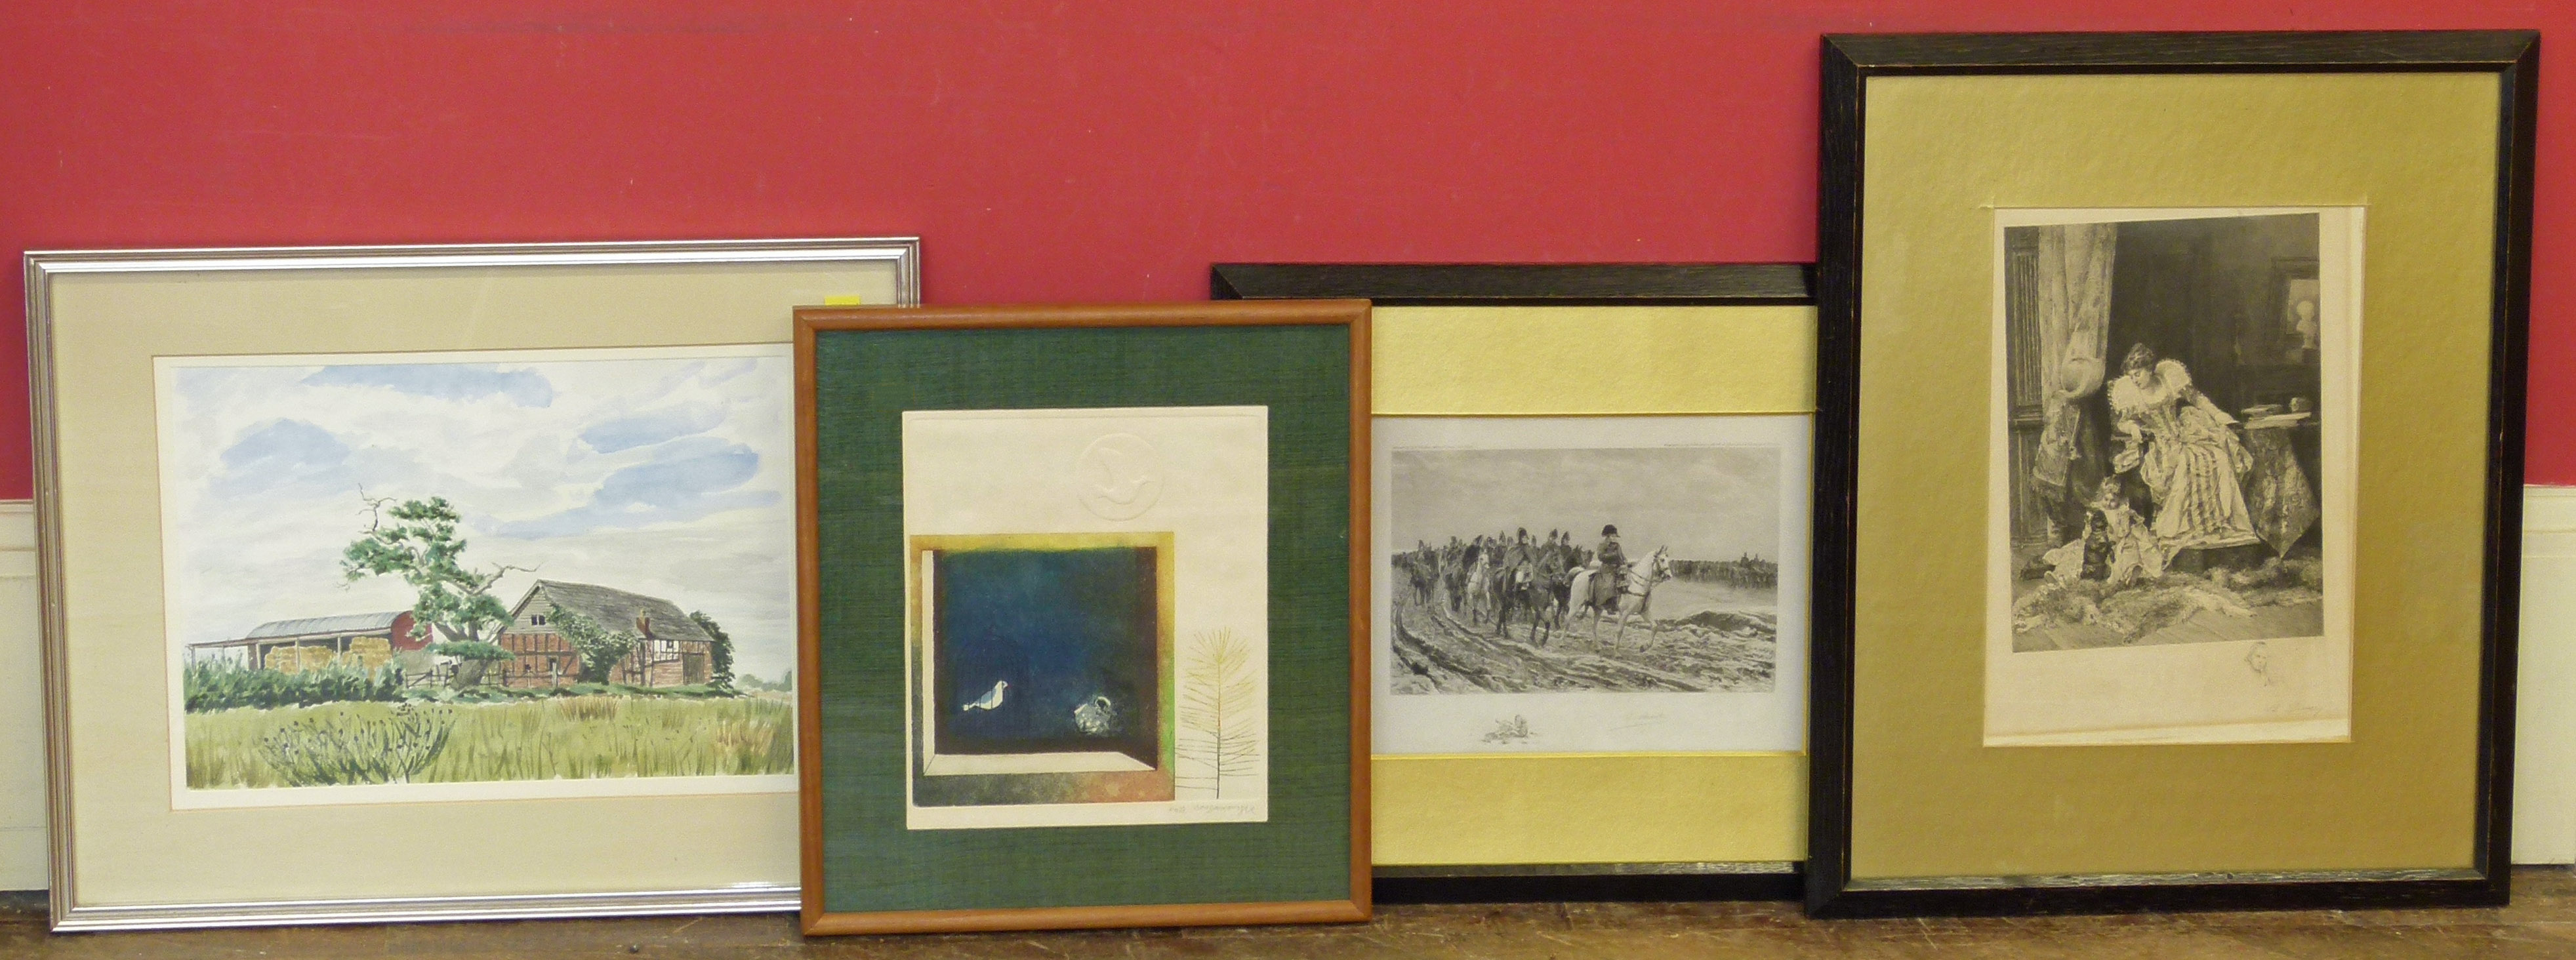 Lot 17 - Old barns Redbook, Whitchurch watercolour, two prints after Drury and one other limited edition